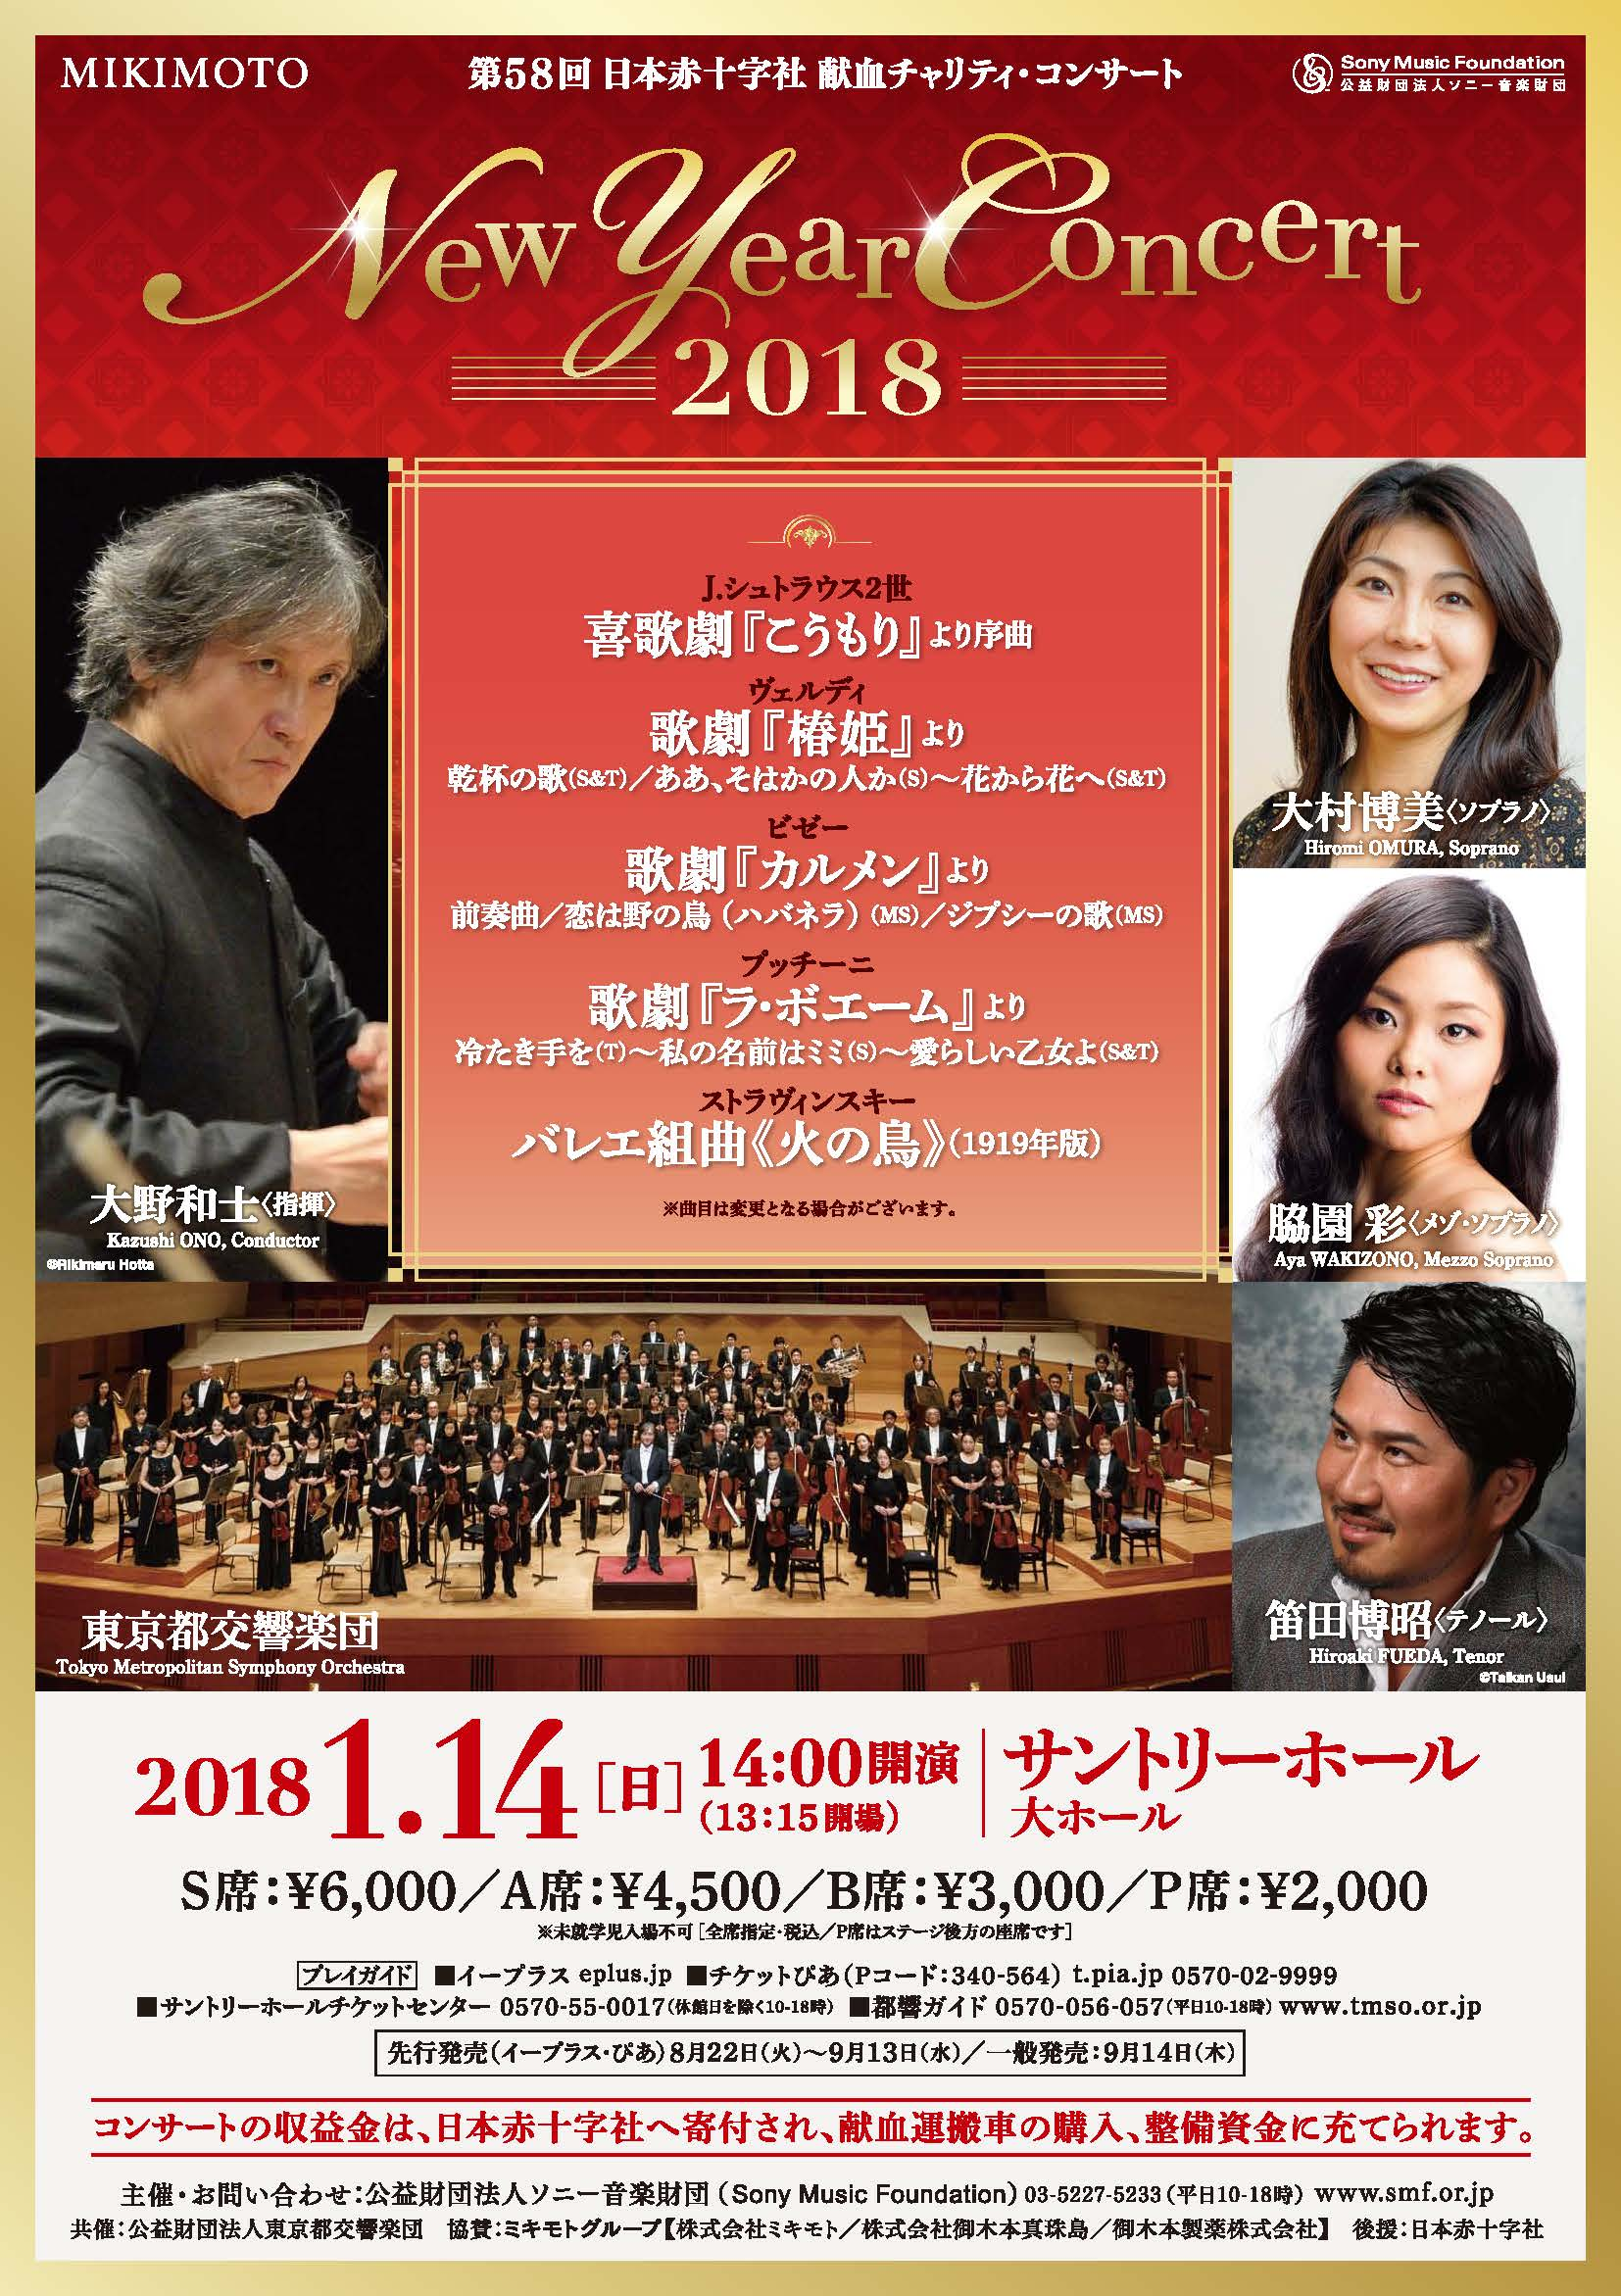 MIKIMOTO 第58回 日本赤十字社 献血チャリティ・コンサート New Year Concert 2018